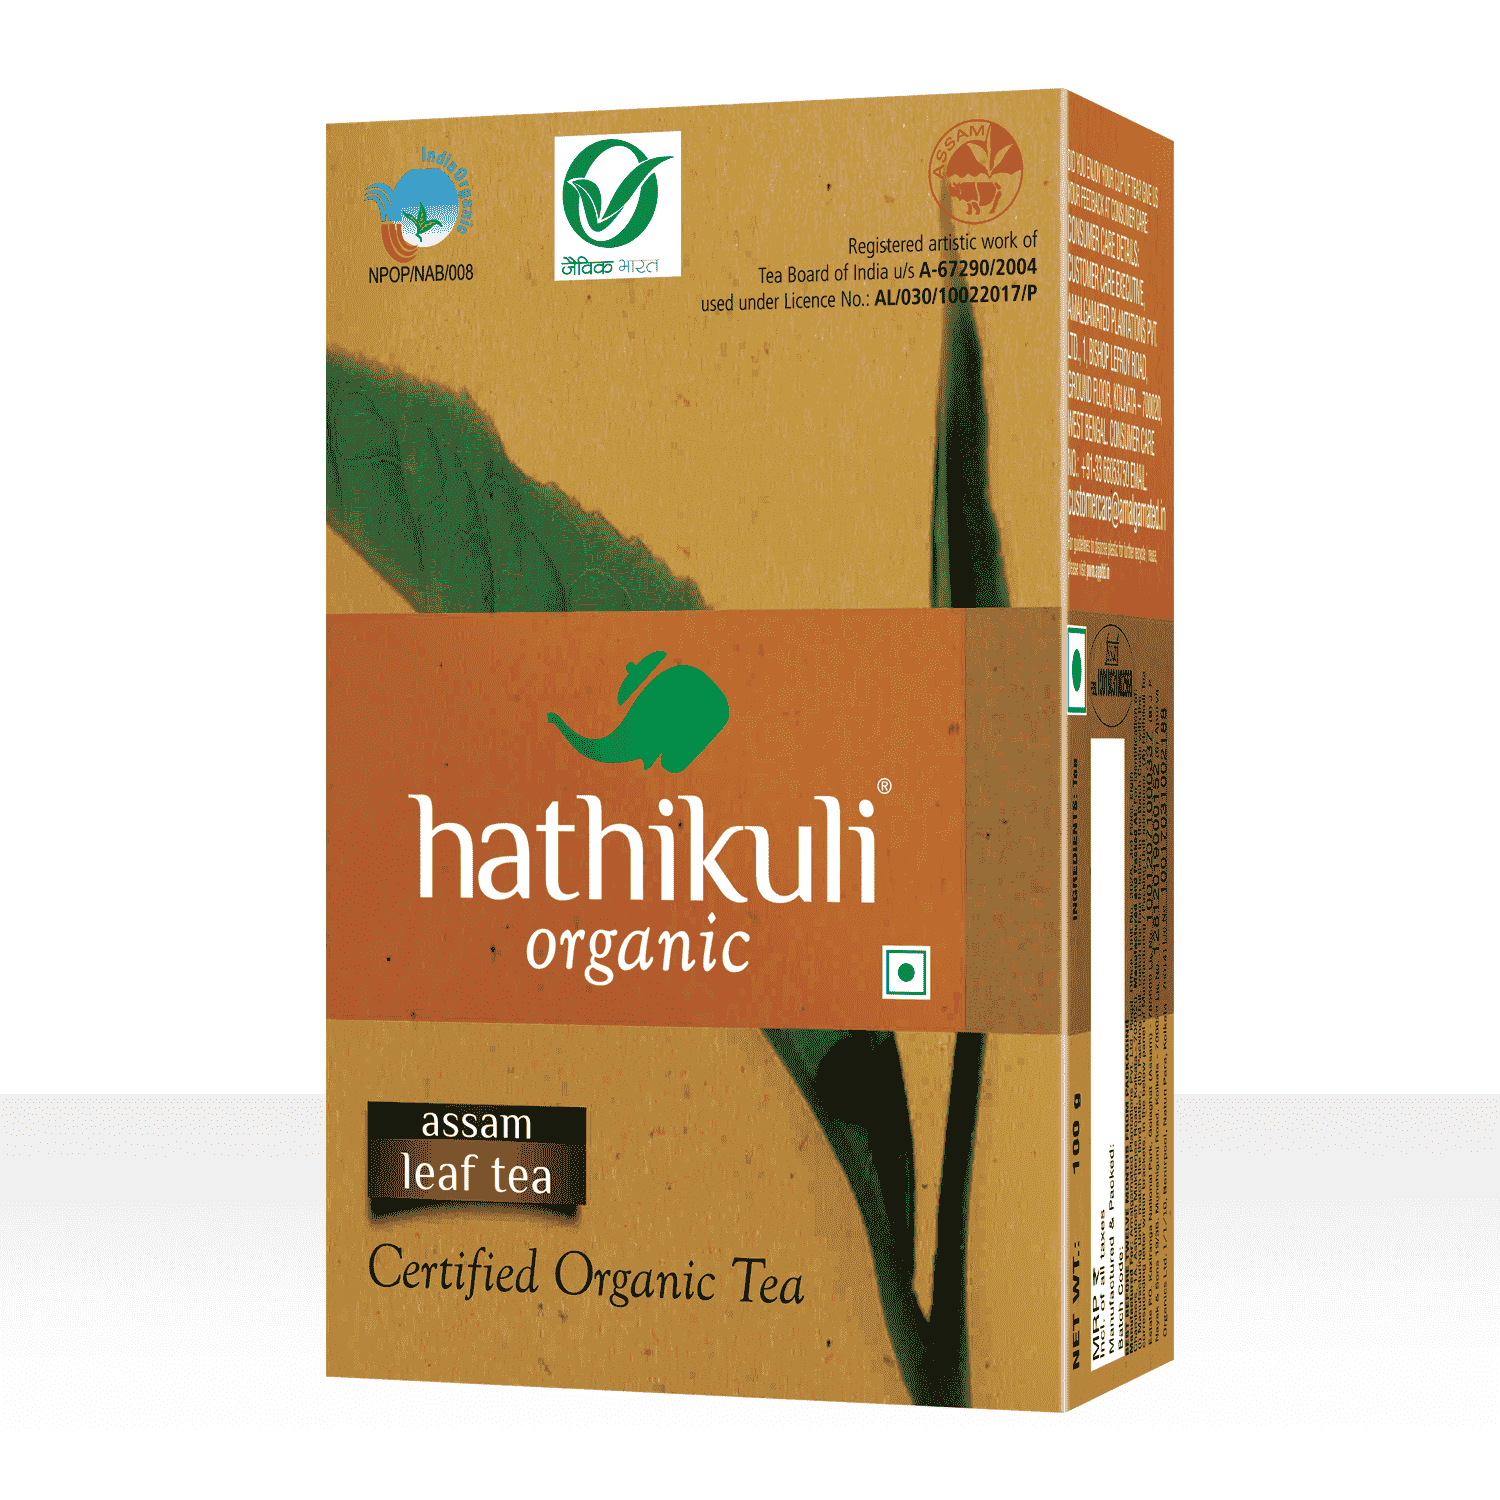 Hathikuli Organic 100 Gm Orthodox